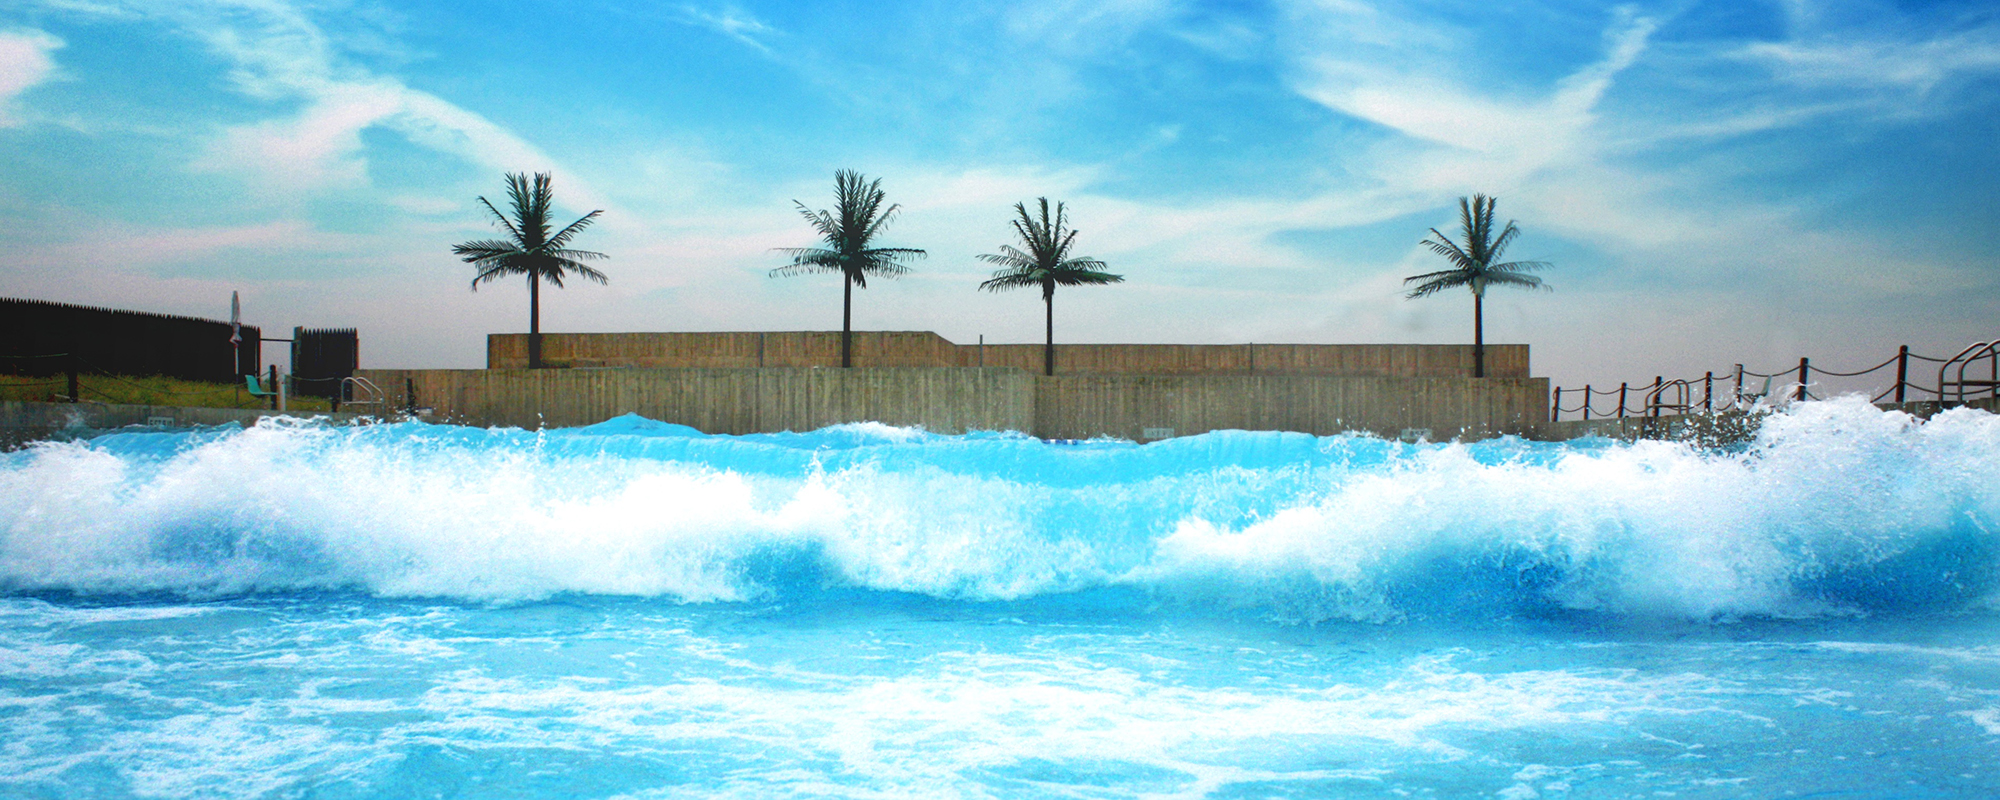 A wavepool with four palm trees behind it